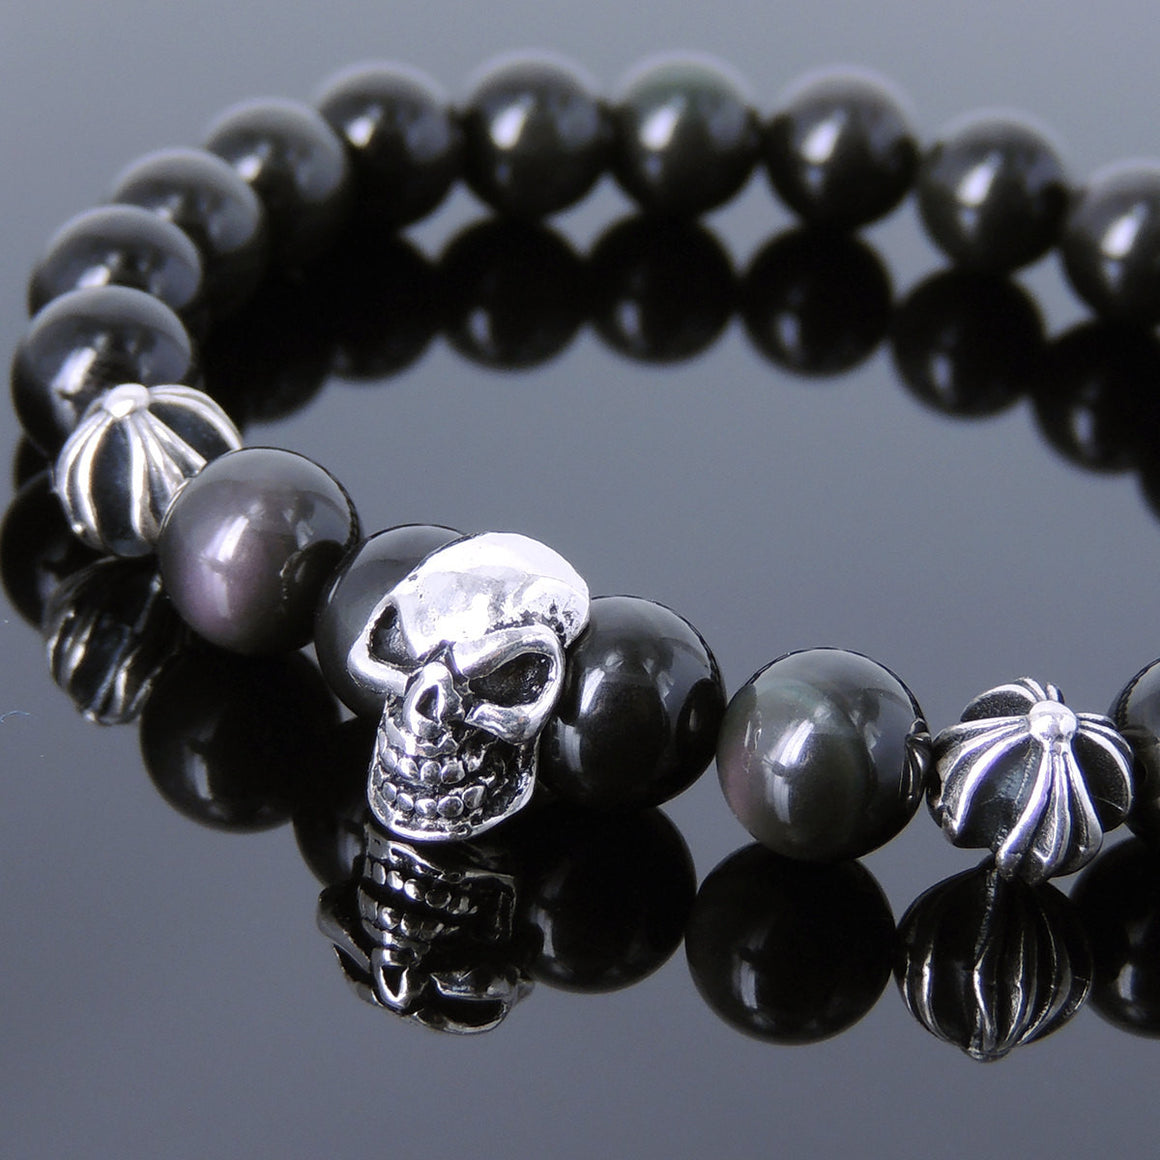 8mm Rainbow Black Obsidian Healing Gemstone Bracelet with S925 Sterling Silver Protective Skull & Cross Beads- Handmade by Gem & Silver BR751